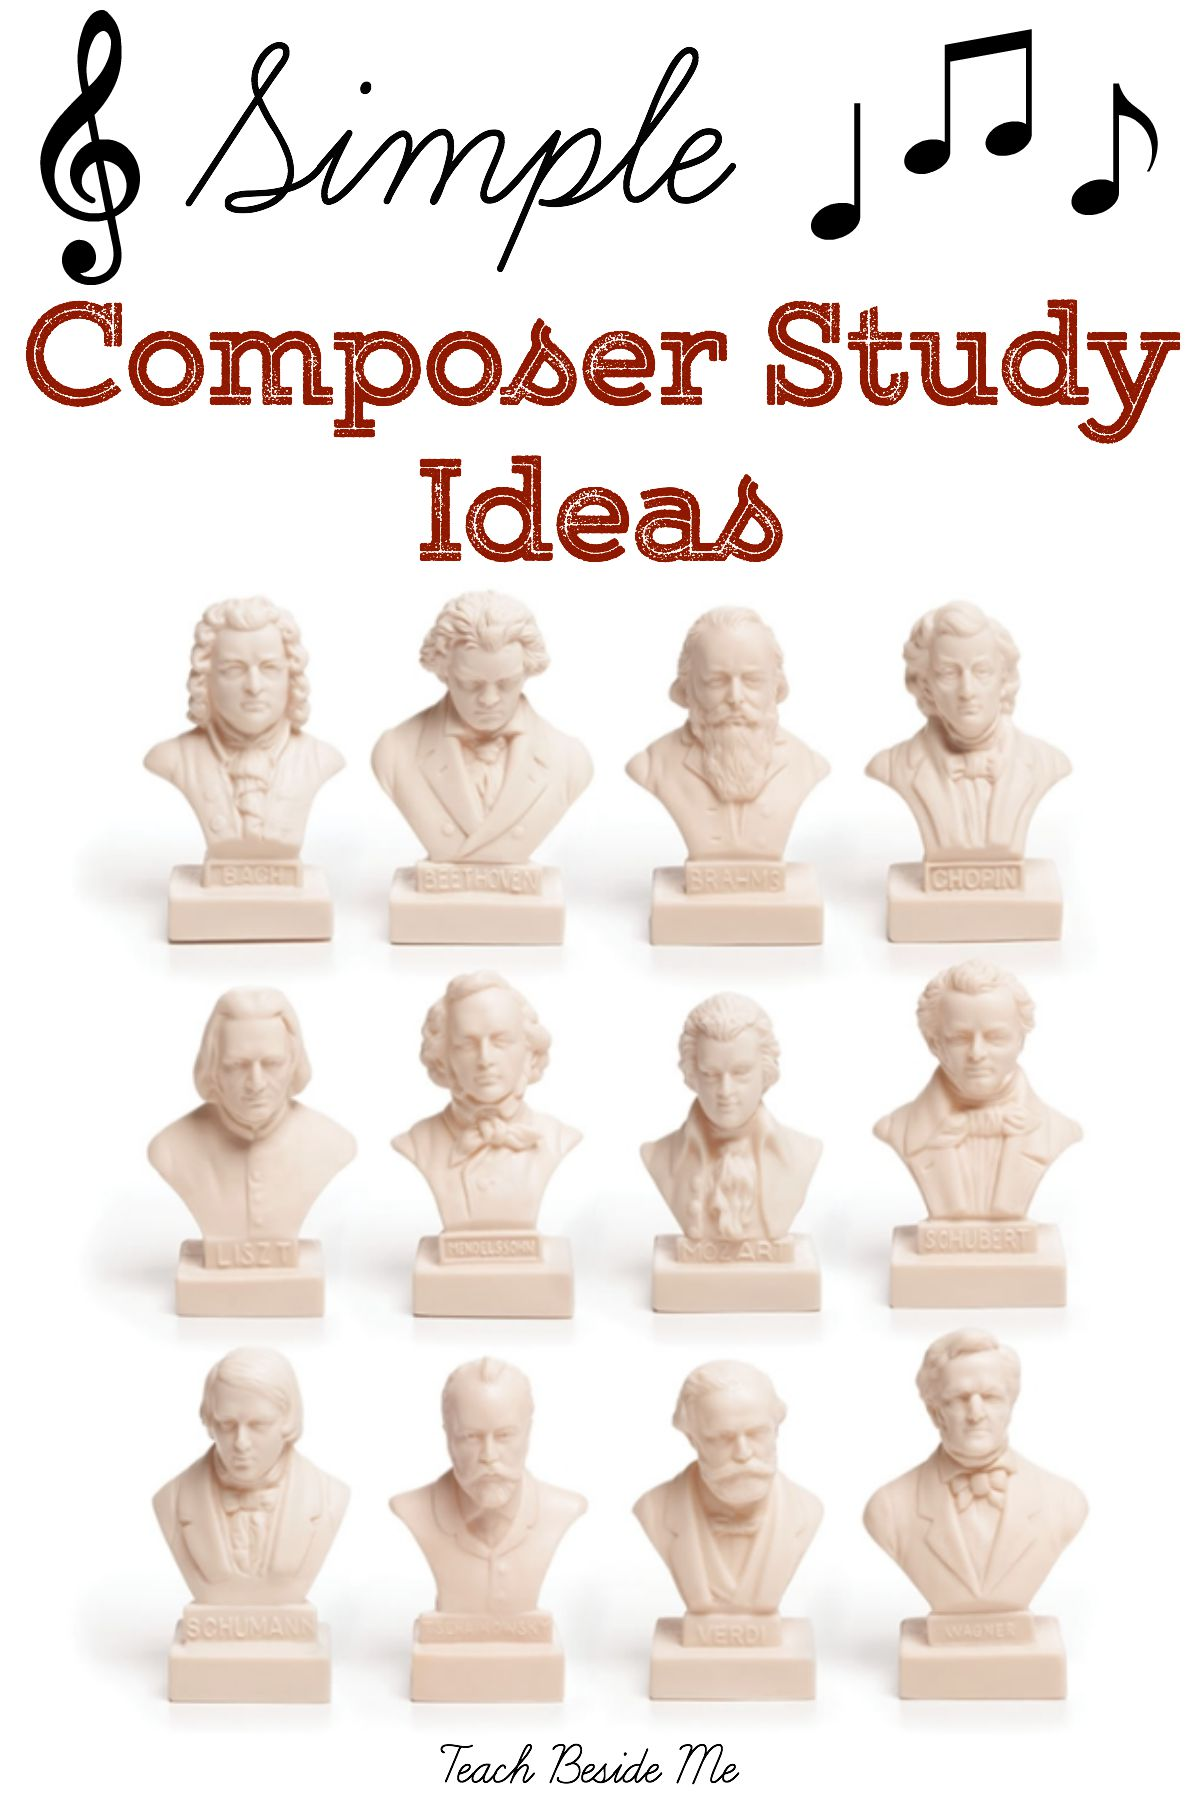 Simple Composer Study Ideas